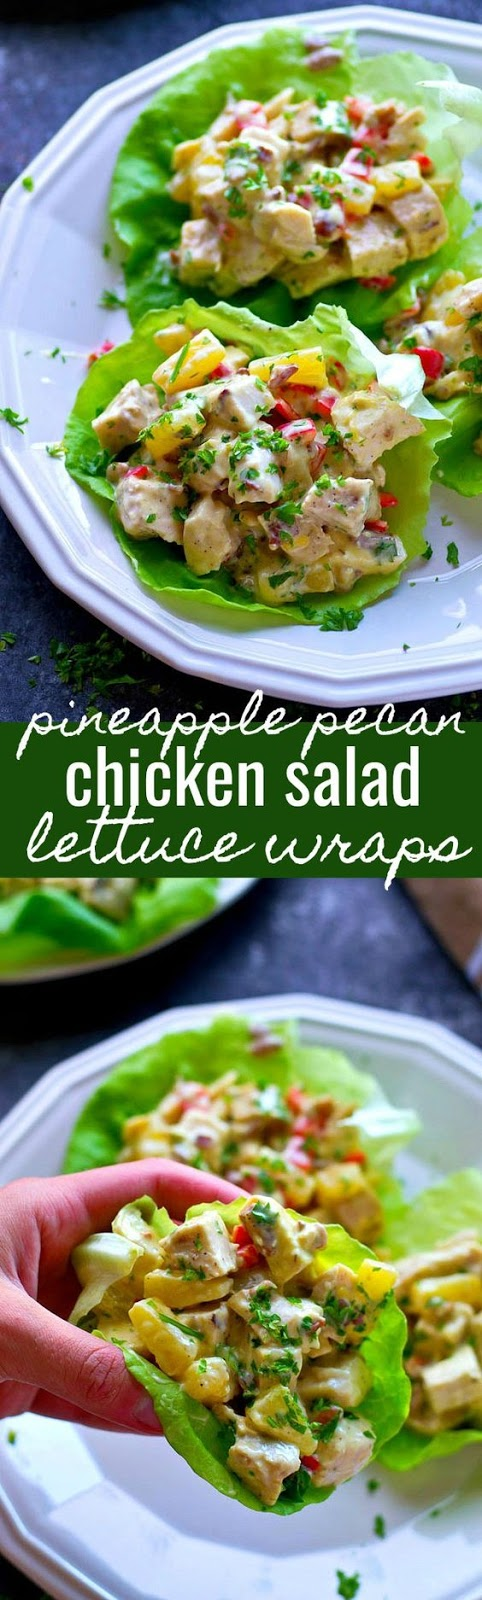 Pineapple Pecan Chicken Salad Lettuce Wraps